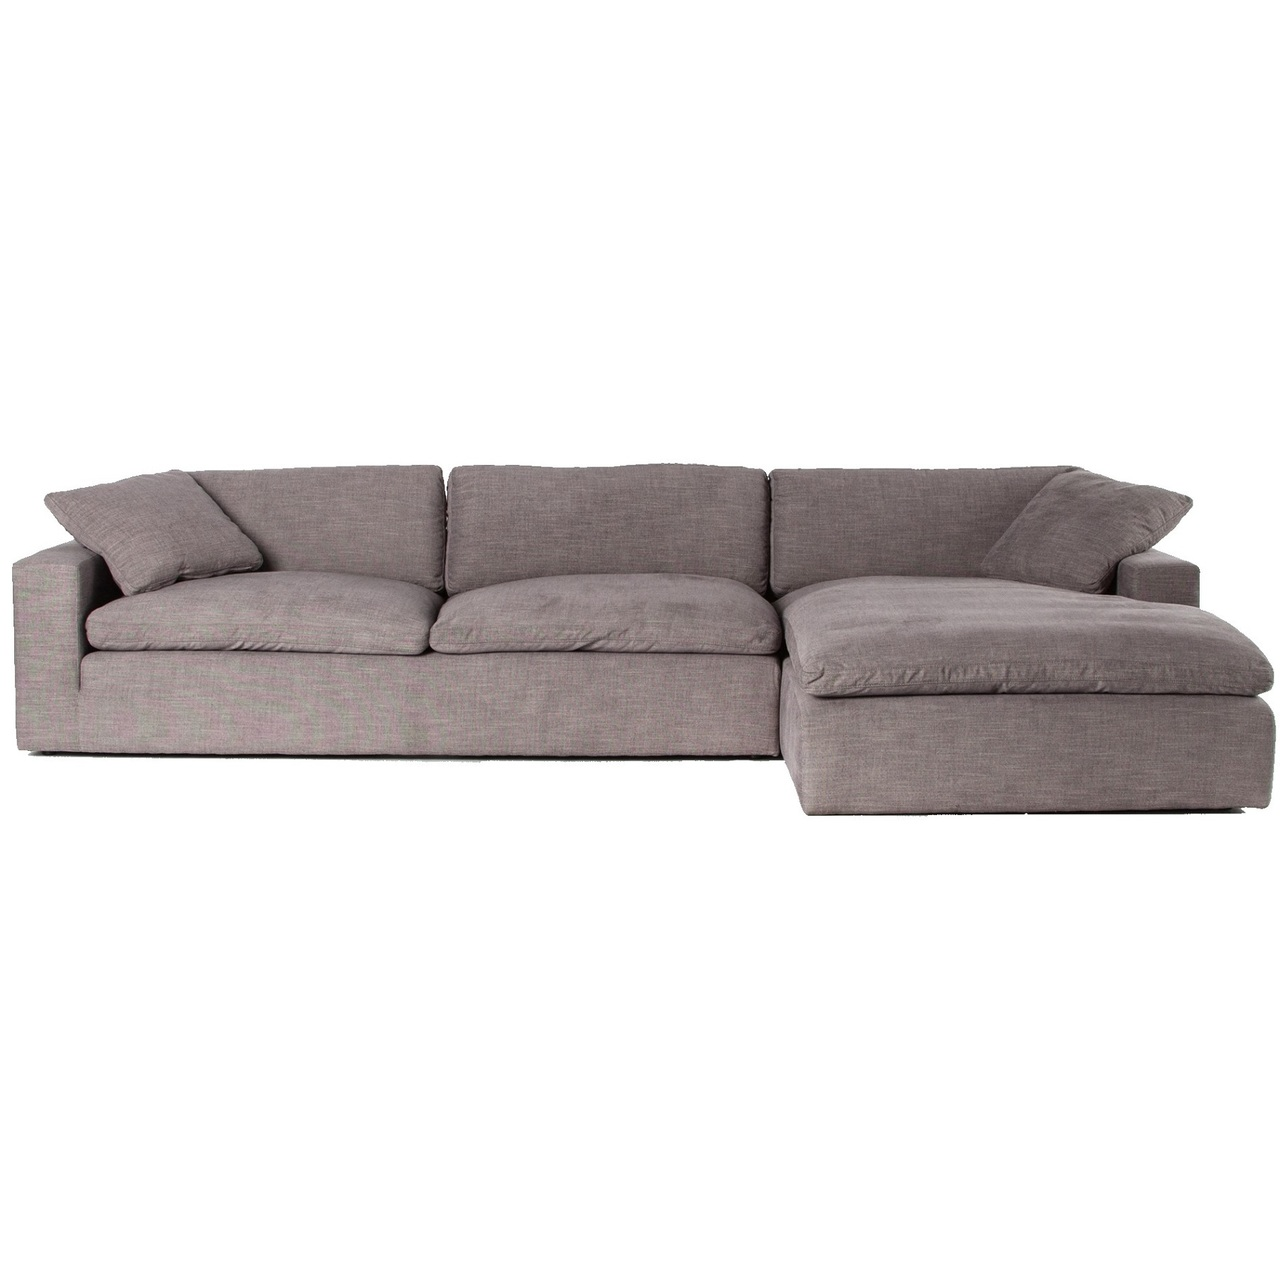 plume grey upholstered block arm raf 2 piece sectional sofa 106